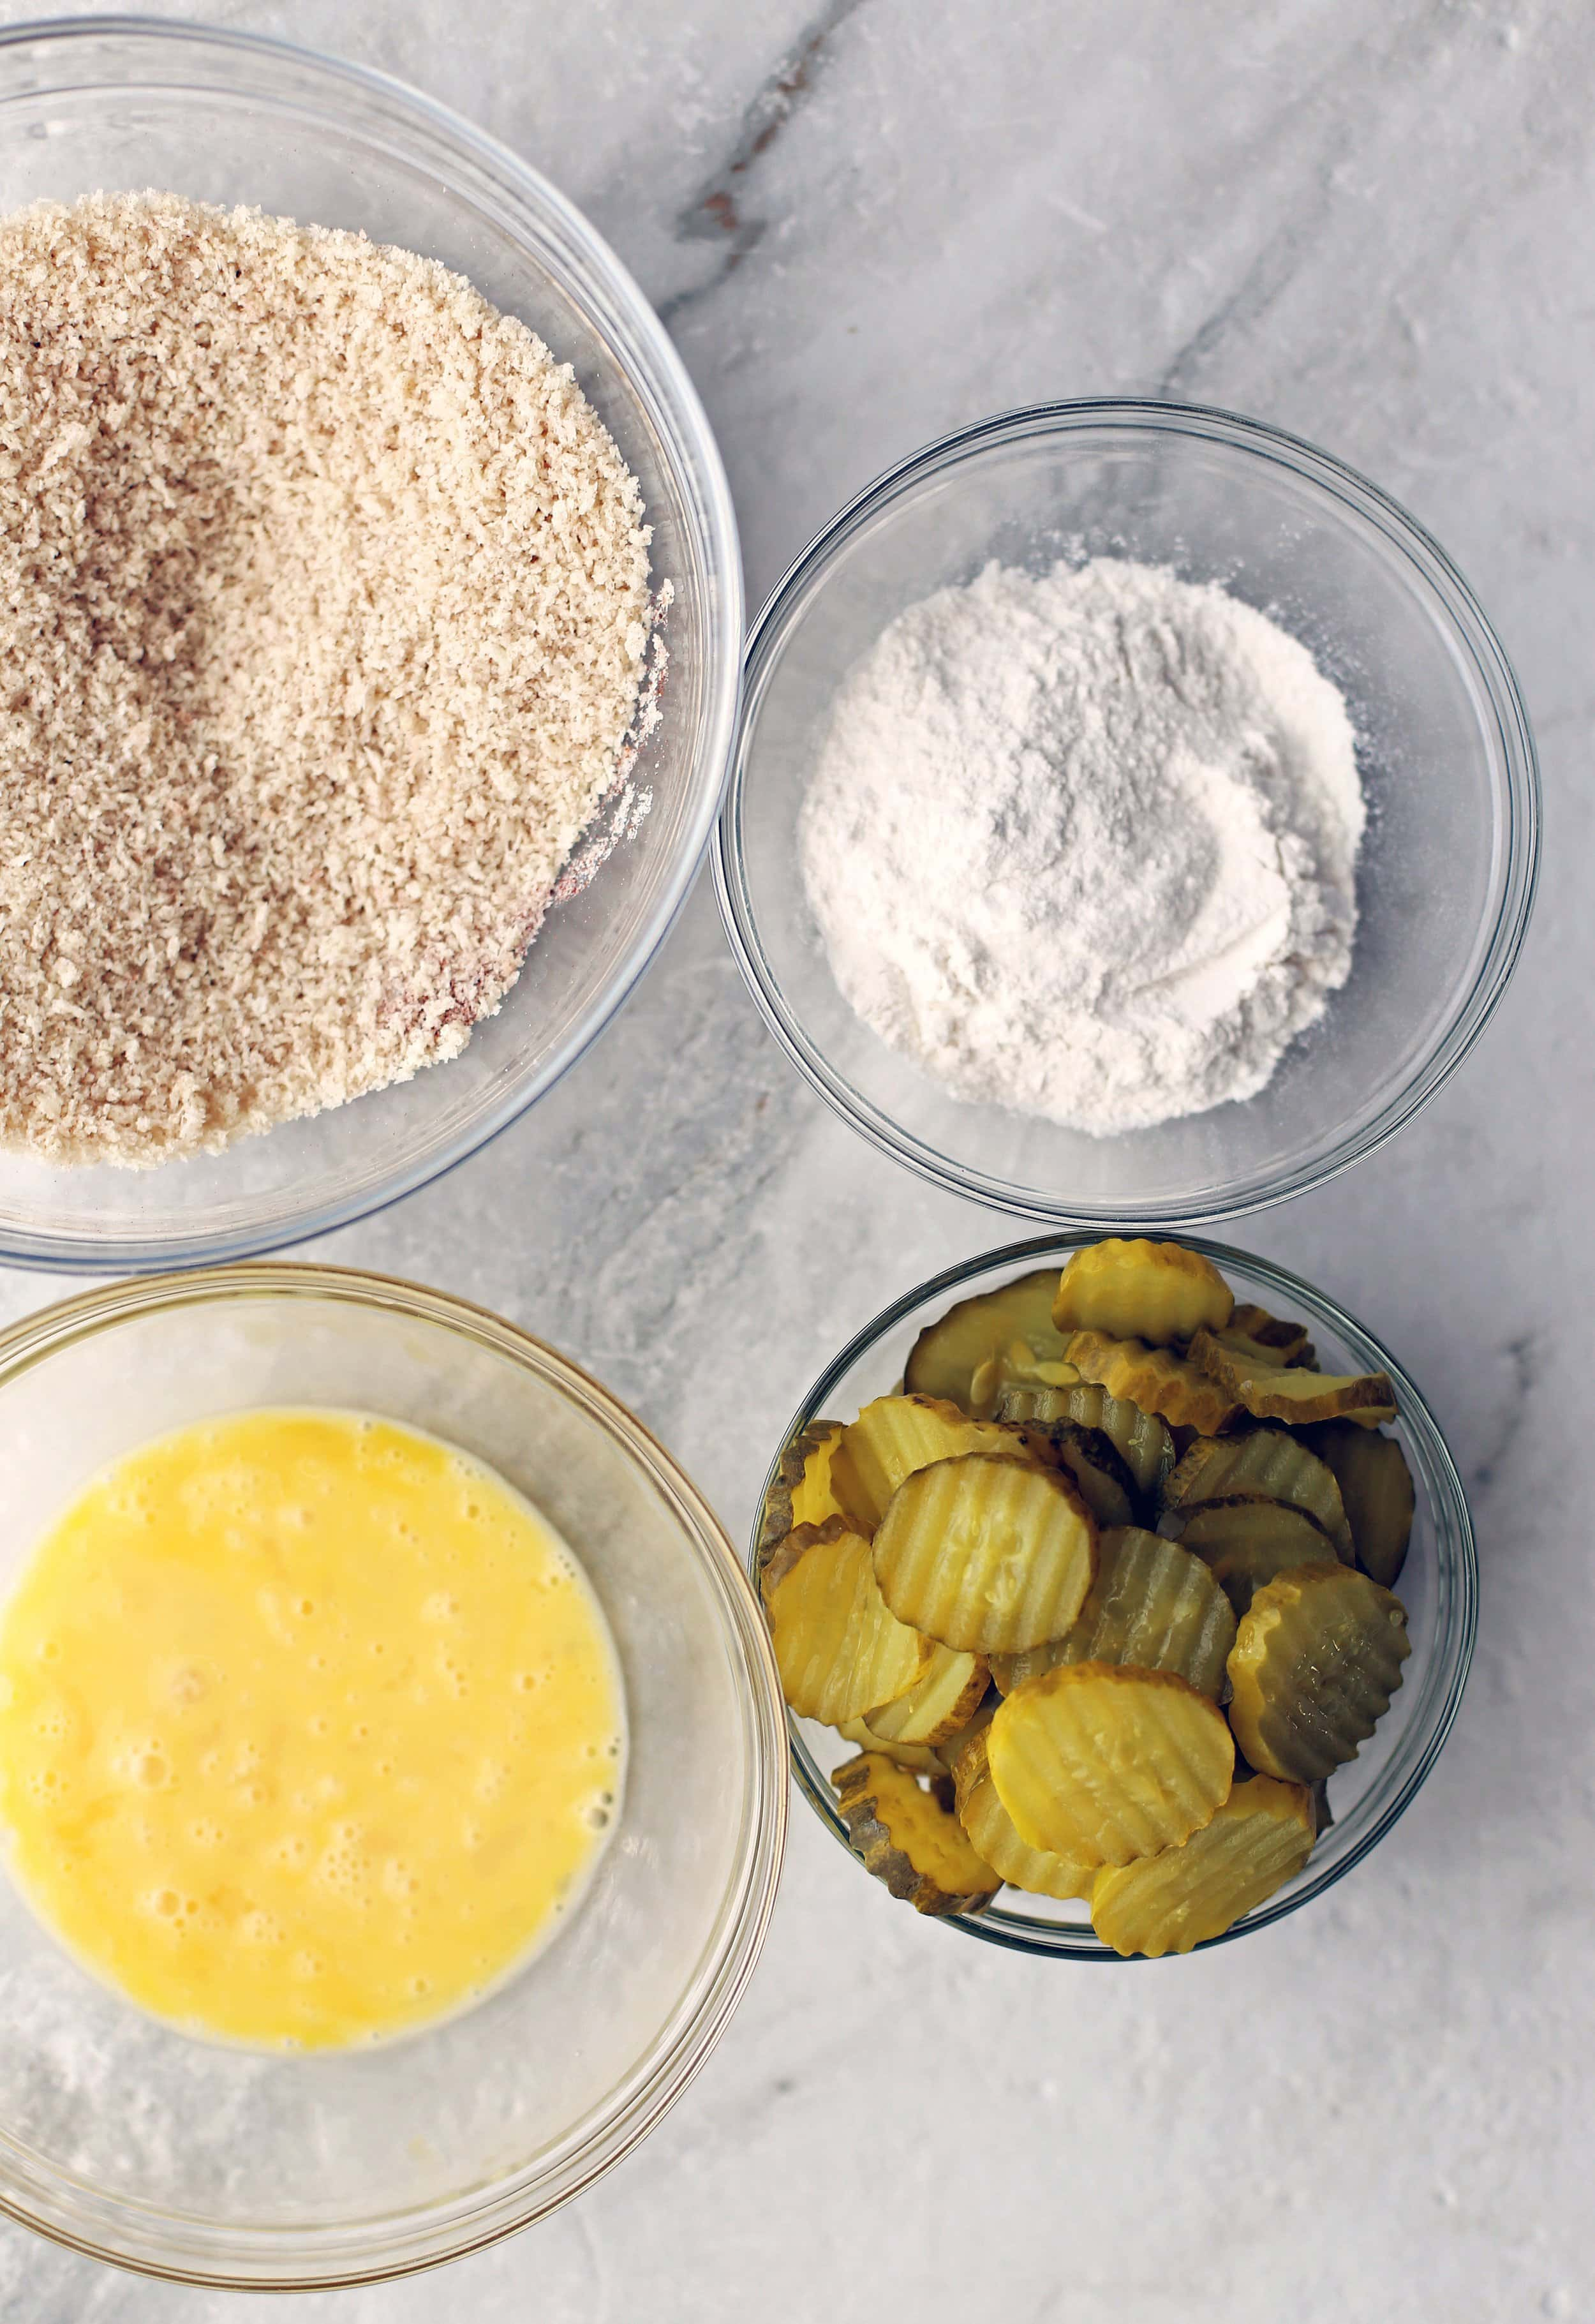 An overhead view of four glass bowls filled with pickle slices, beaten eggs, flour, and panko breadcrumbs.